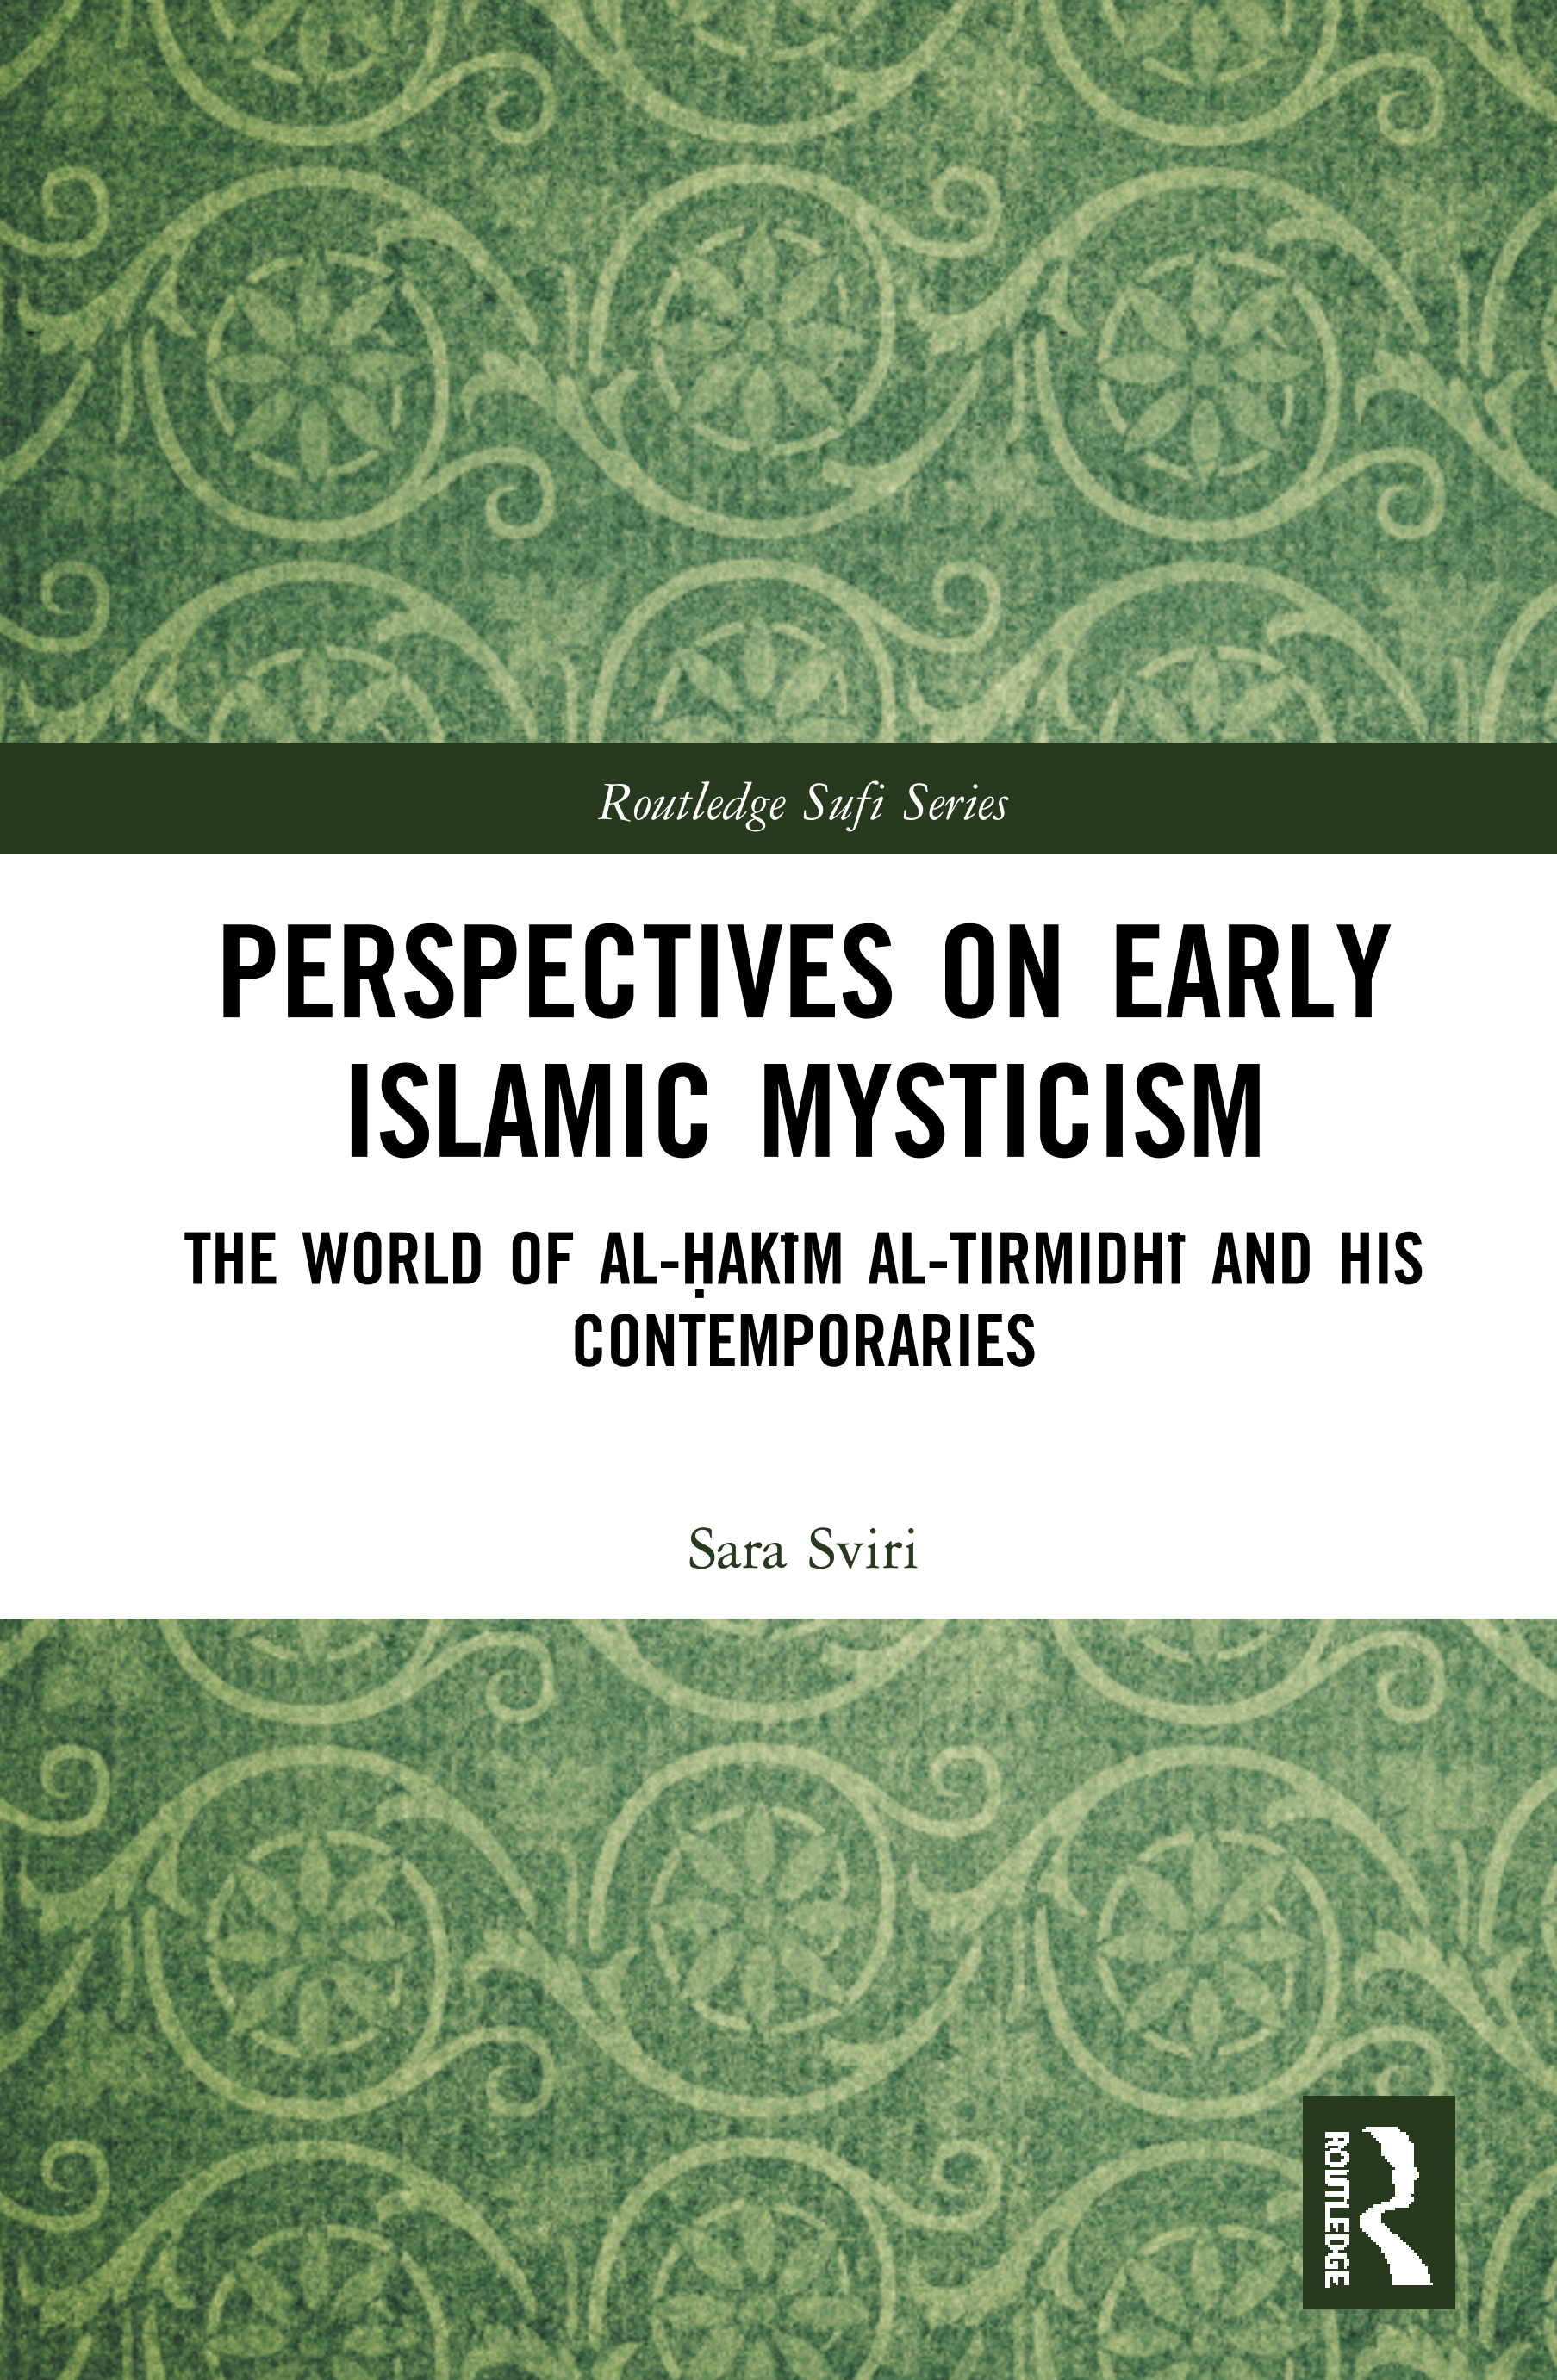 Perspectives on Early Islamic Mysticism: The World of al-Ḥakīm al-Tirmidhī and his Contemporaries book cover